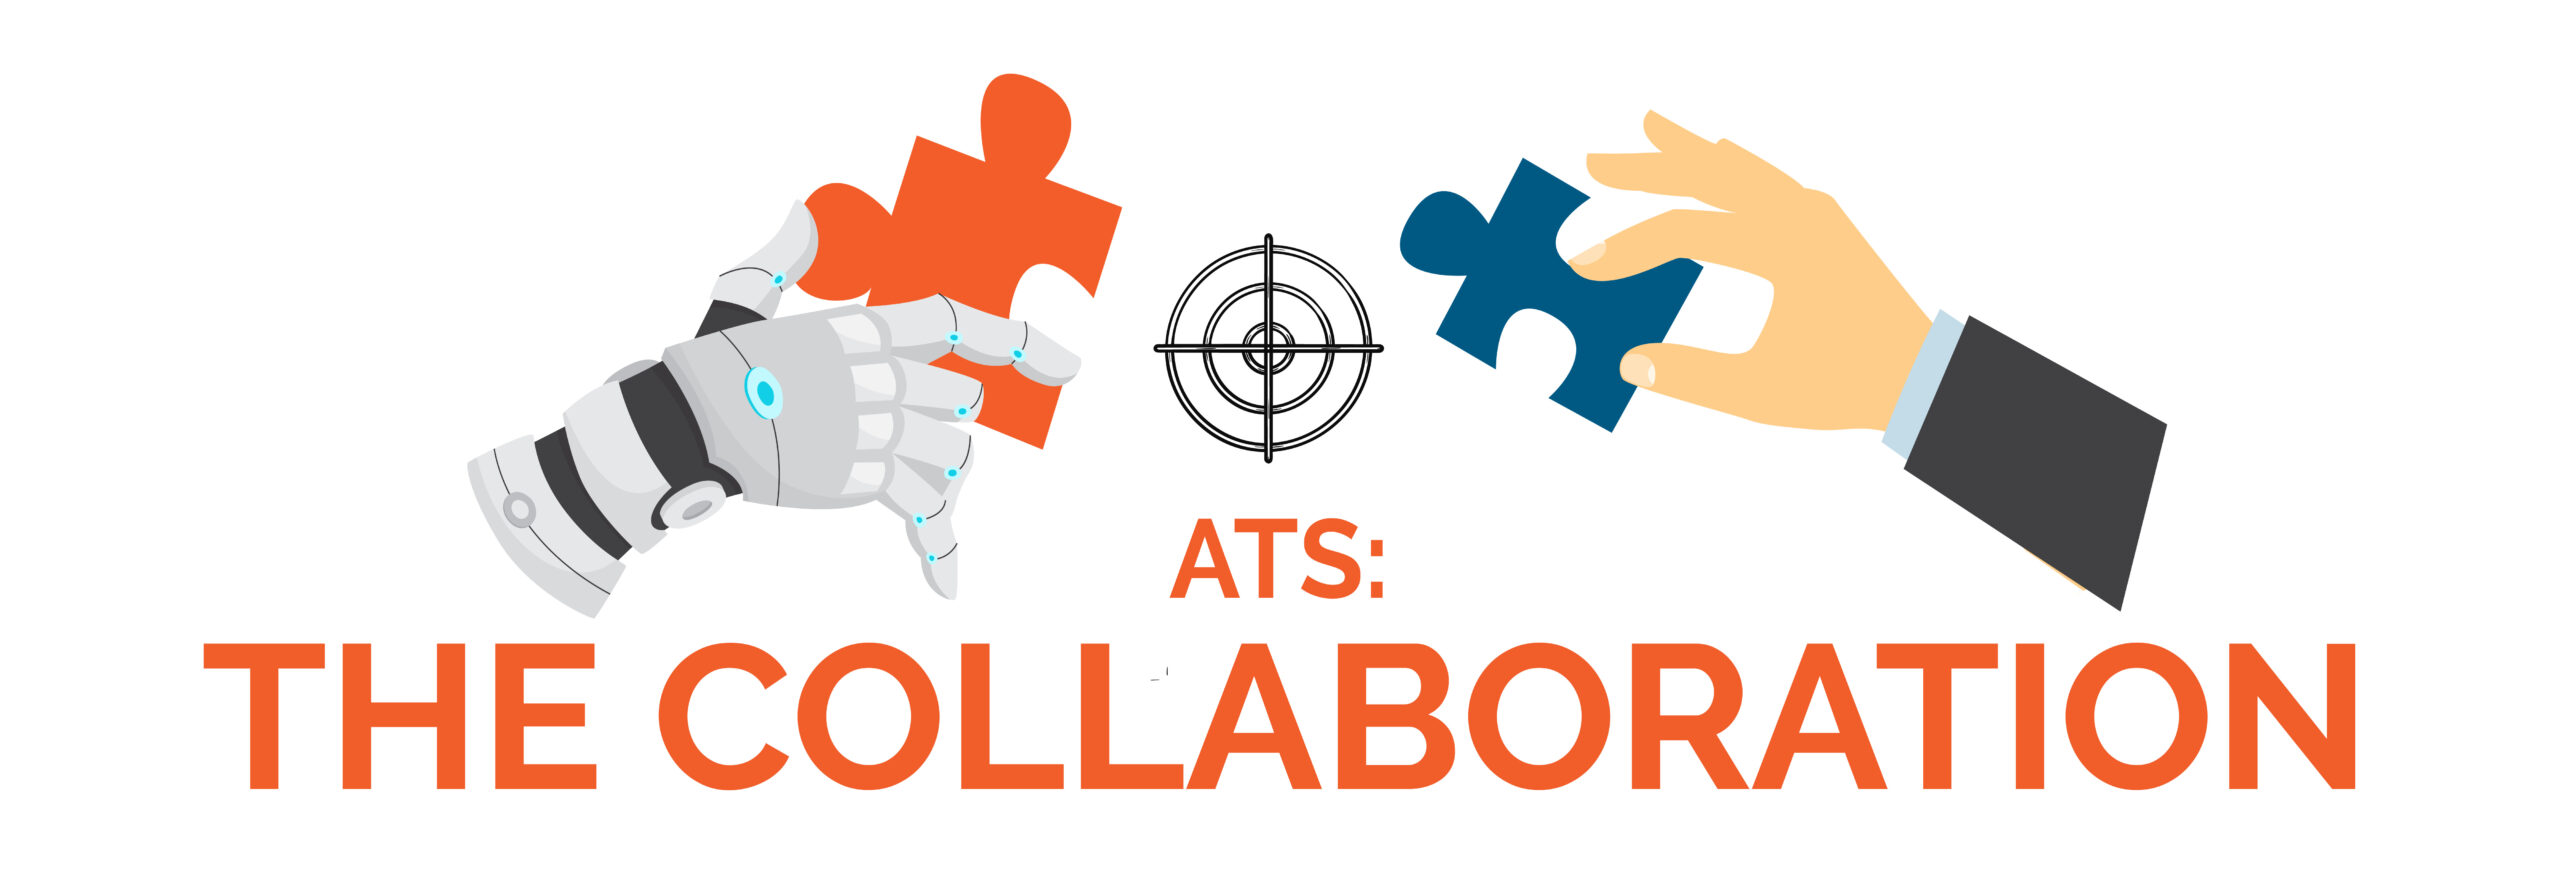 Title with Graphics-ATS THE COLLABORATION.